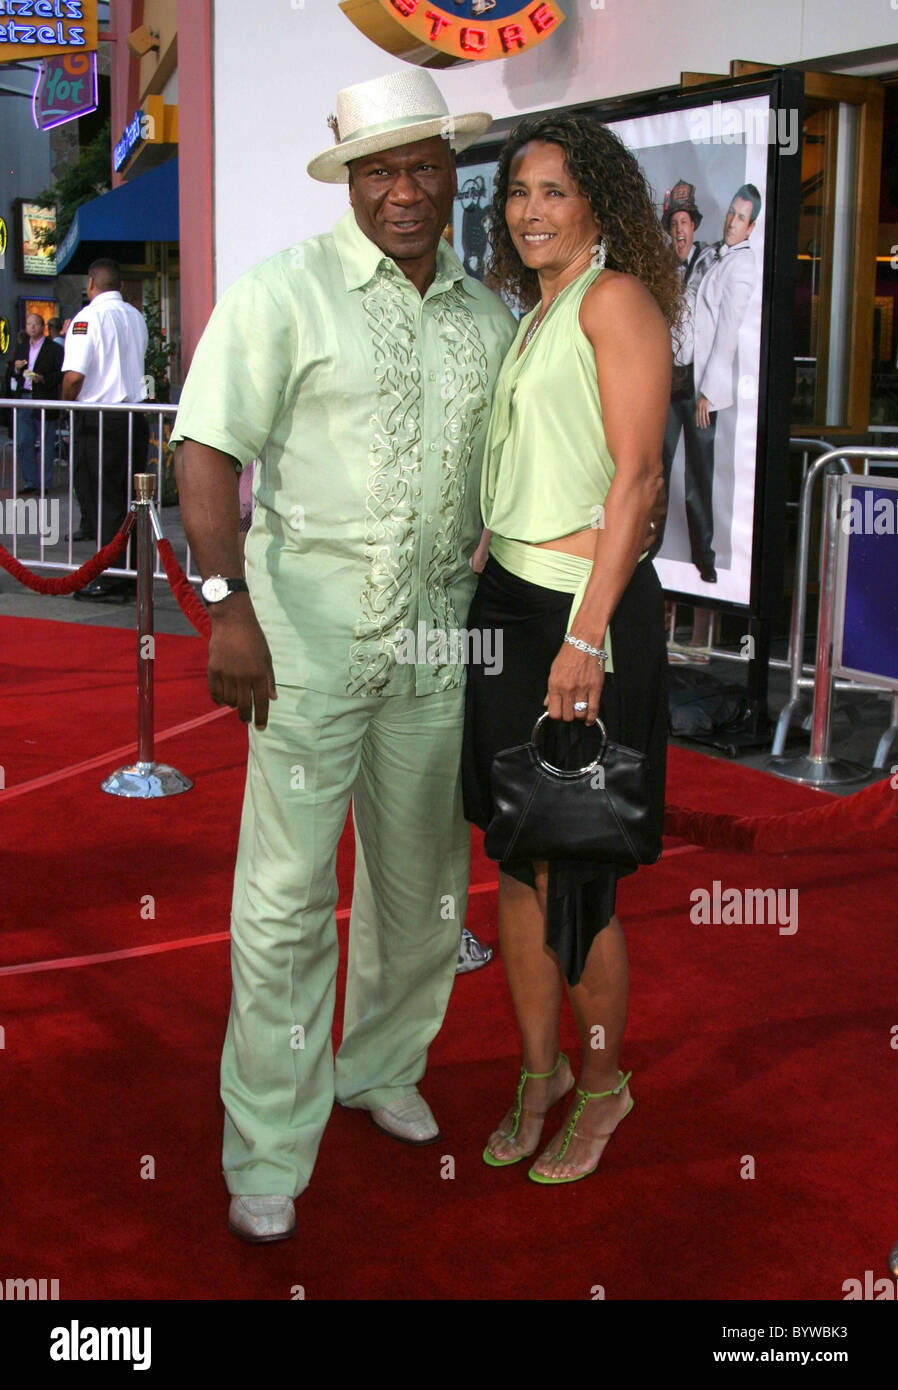 Ving Rhames and Wife I Now Pronounce You Chuck & Larry World